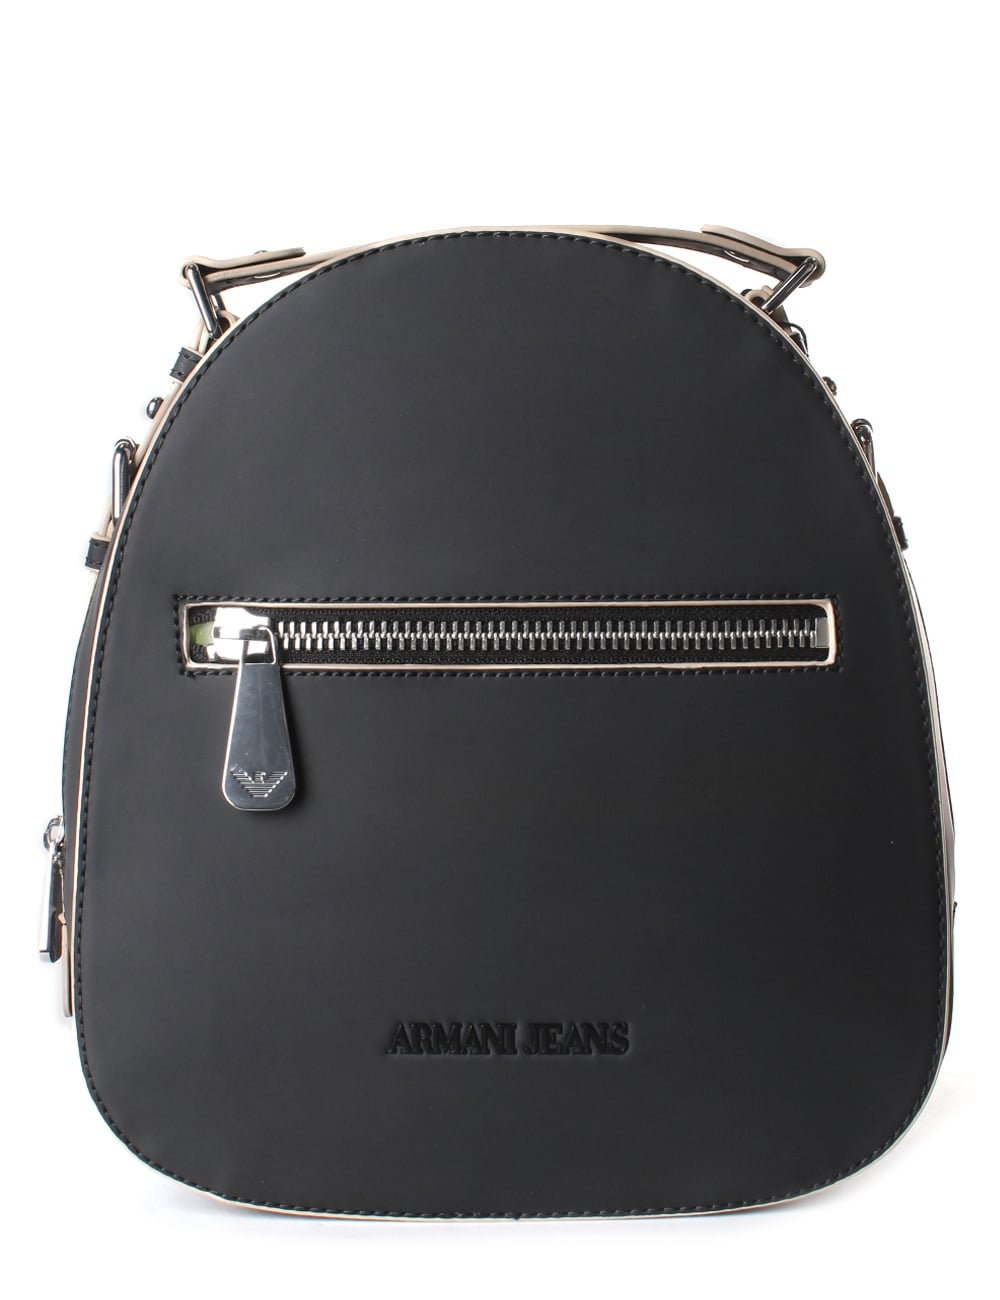 1b73398202c8 ... Bags  Armani Jeans Women s Matte Backpack. Tap image to zoom.  Women  039 s Matte Backpack. Women  039 s Matte Backpack